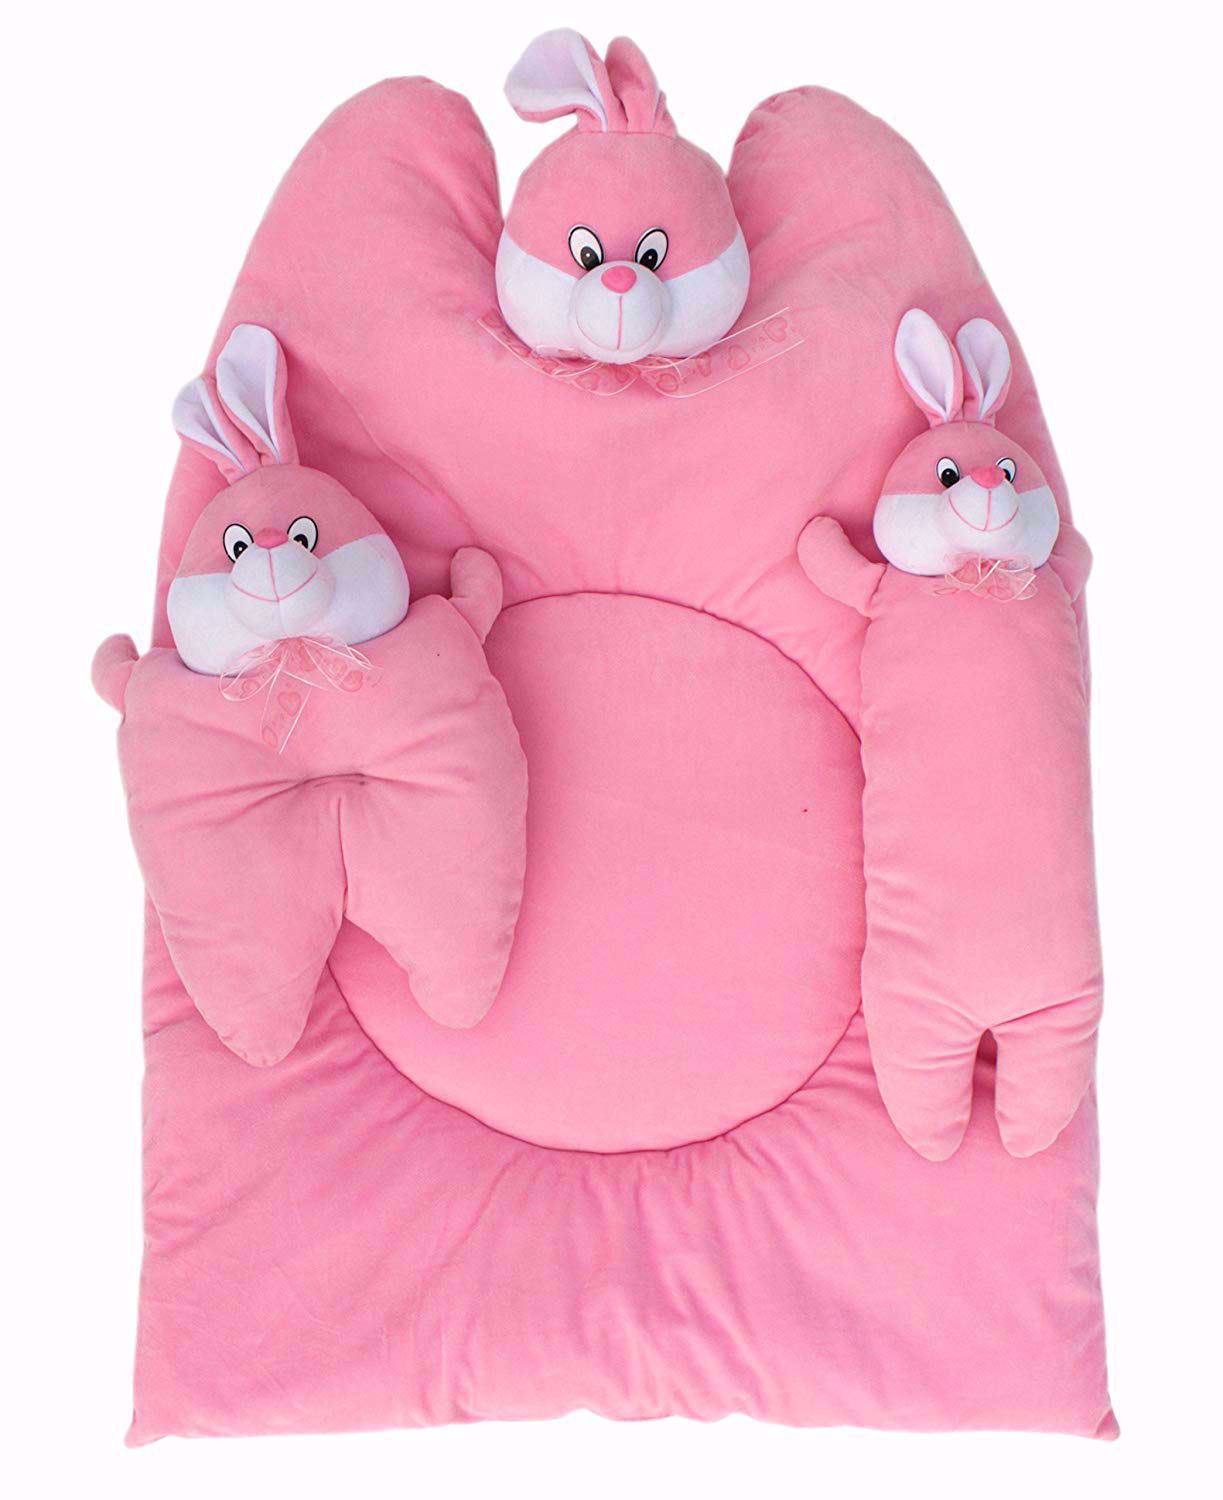 Bunny Mattress with Bolsters and Pillow (Pink) - MT-09_Pink_Bunny,baby girl crib bedding online